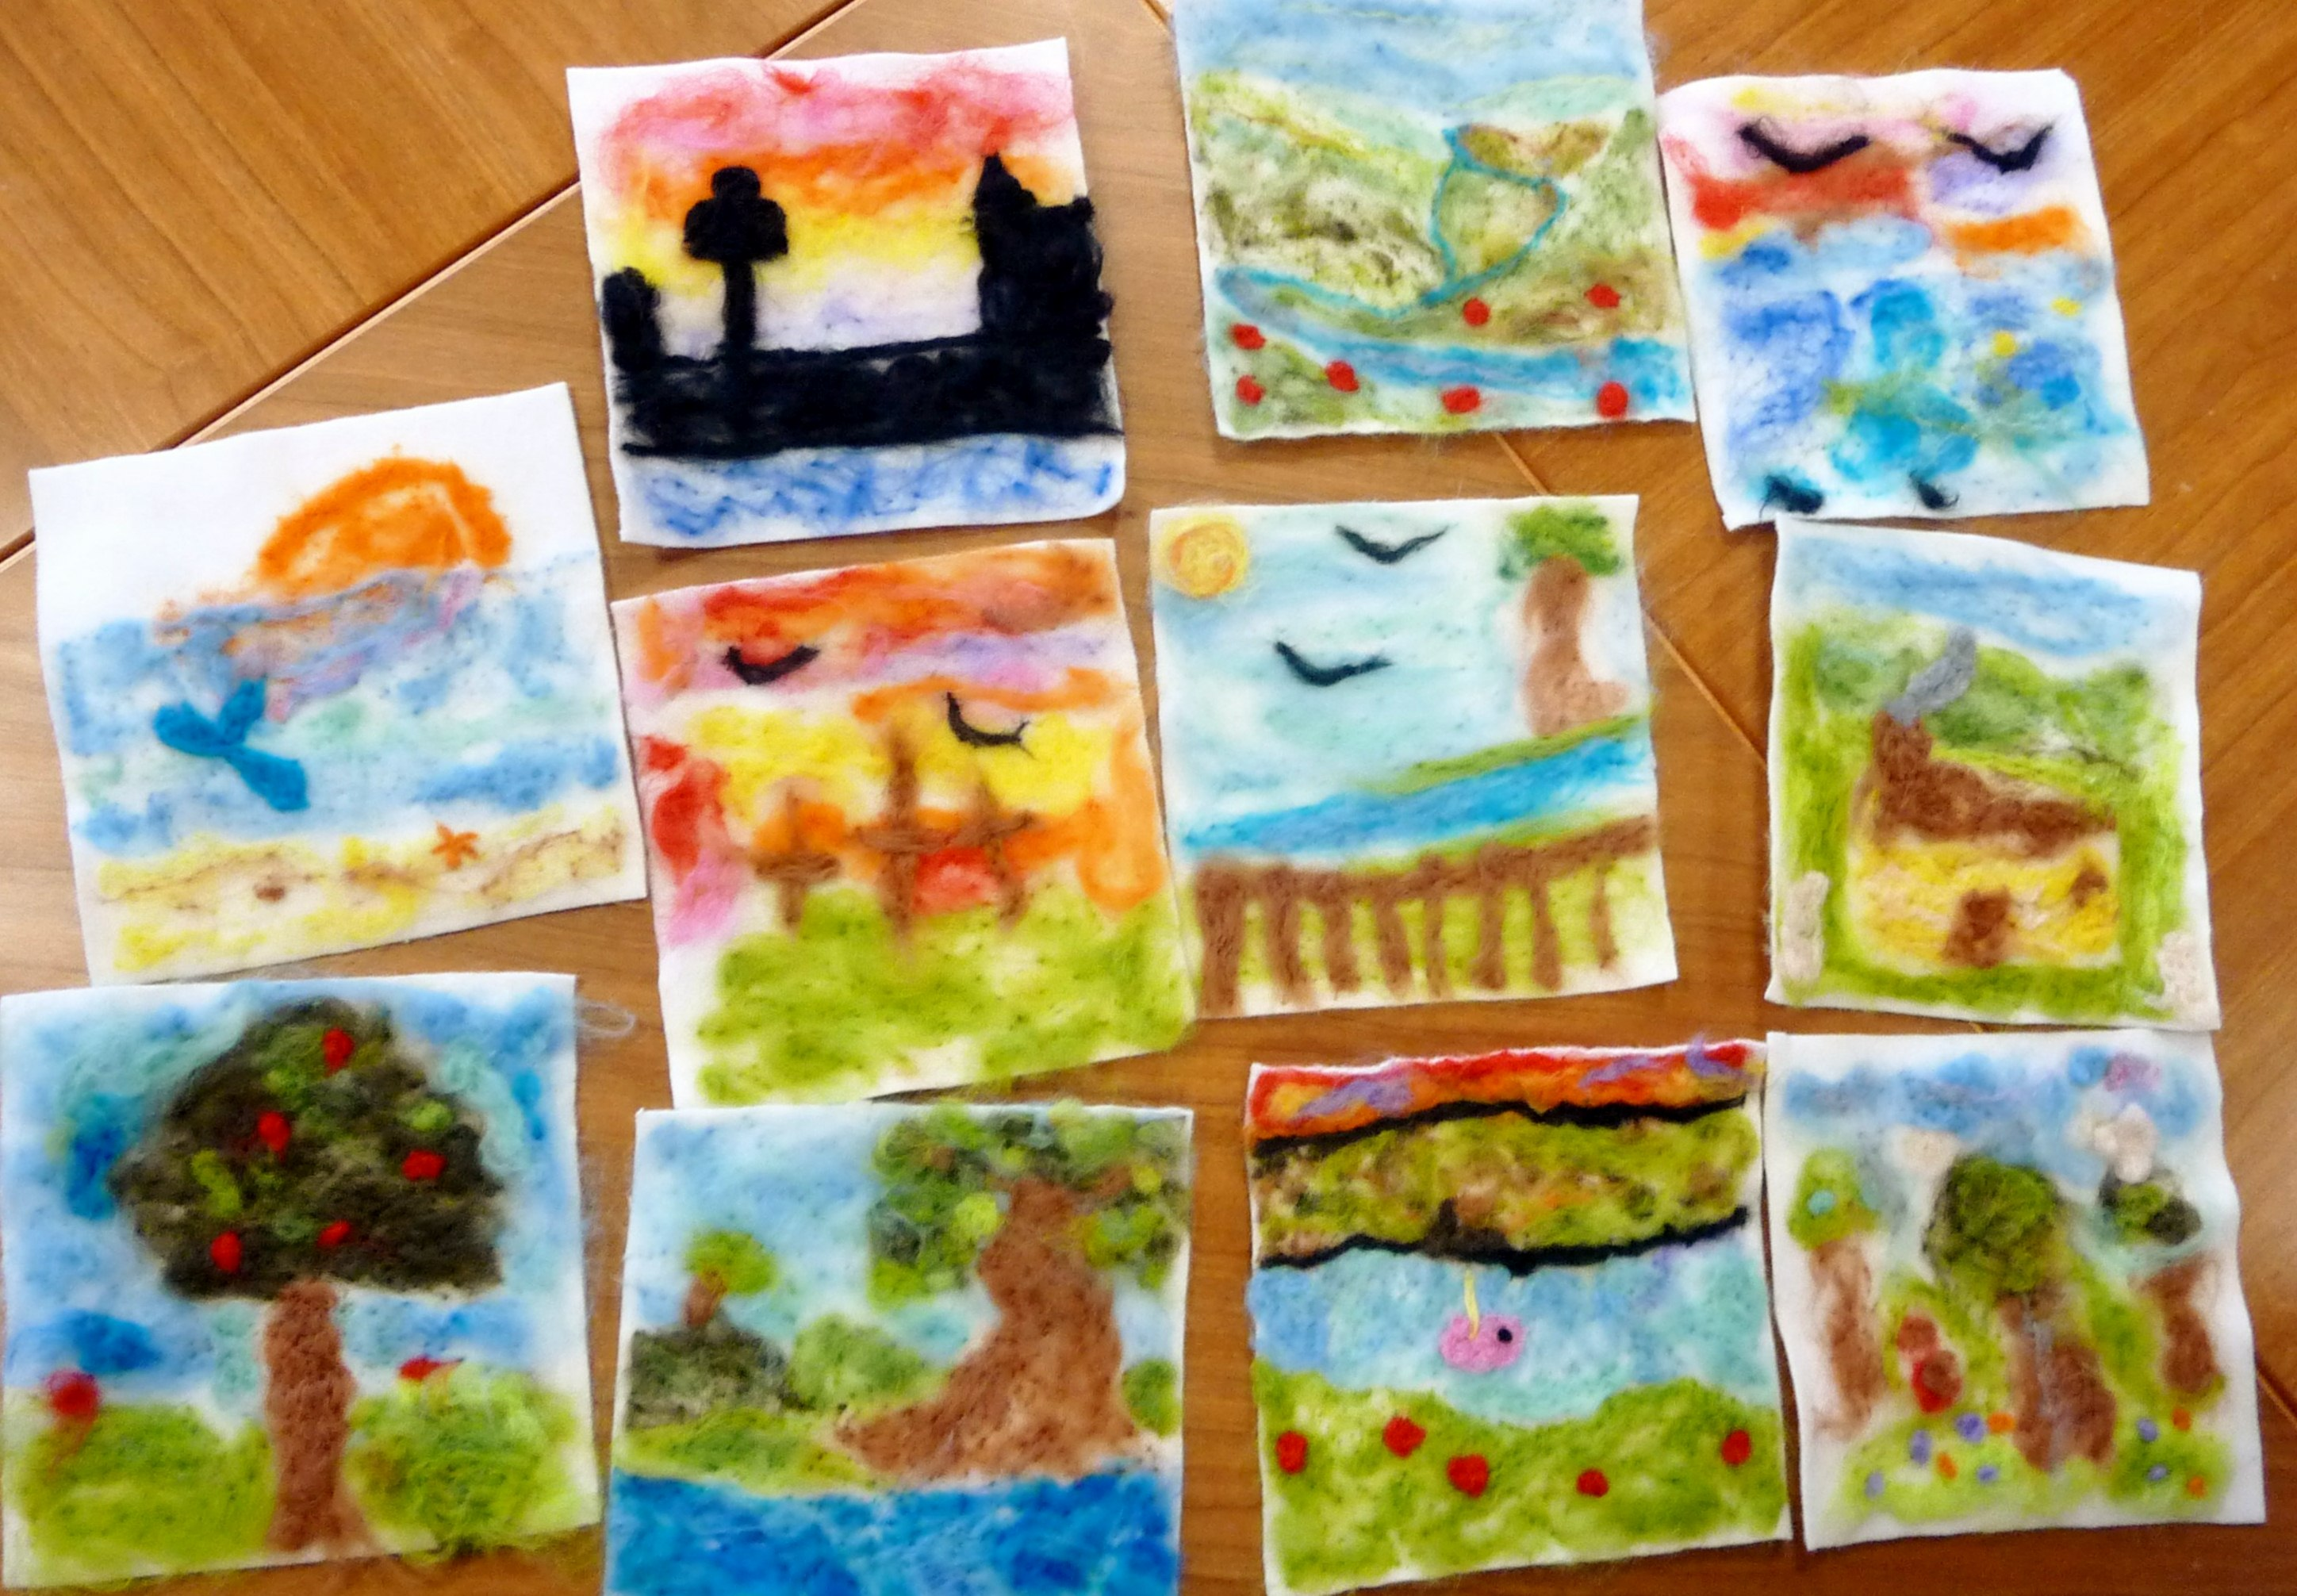 Merseyside YE made needlfelted landscapes and seascapes this month. Here you see their pictures after needlefelting and before the final embroidery has been added